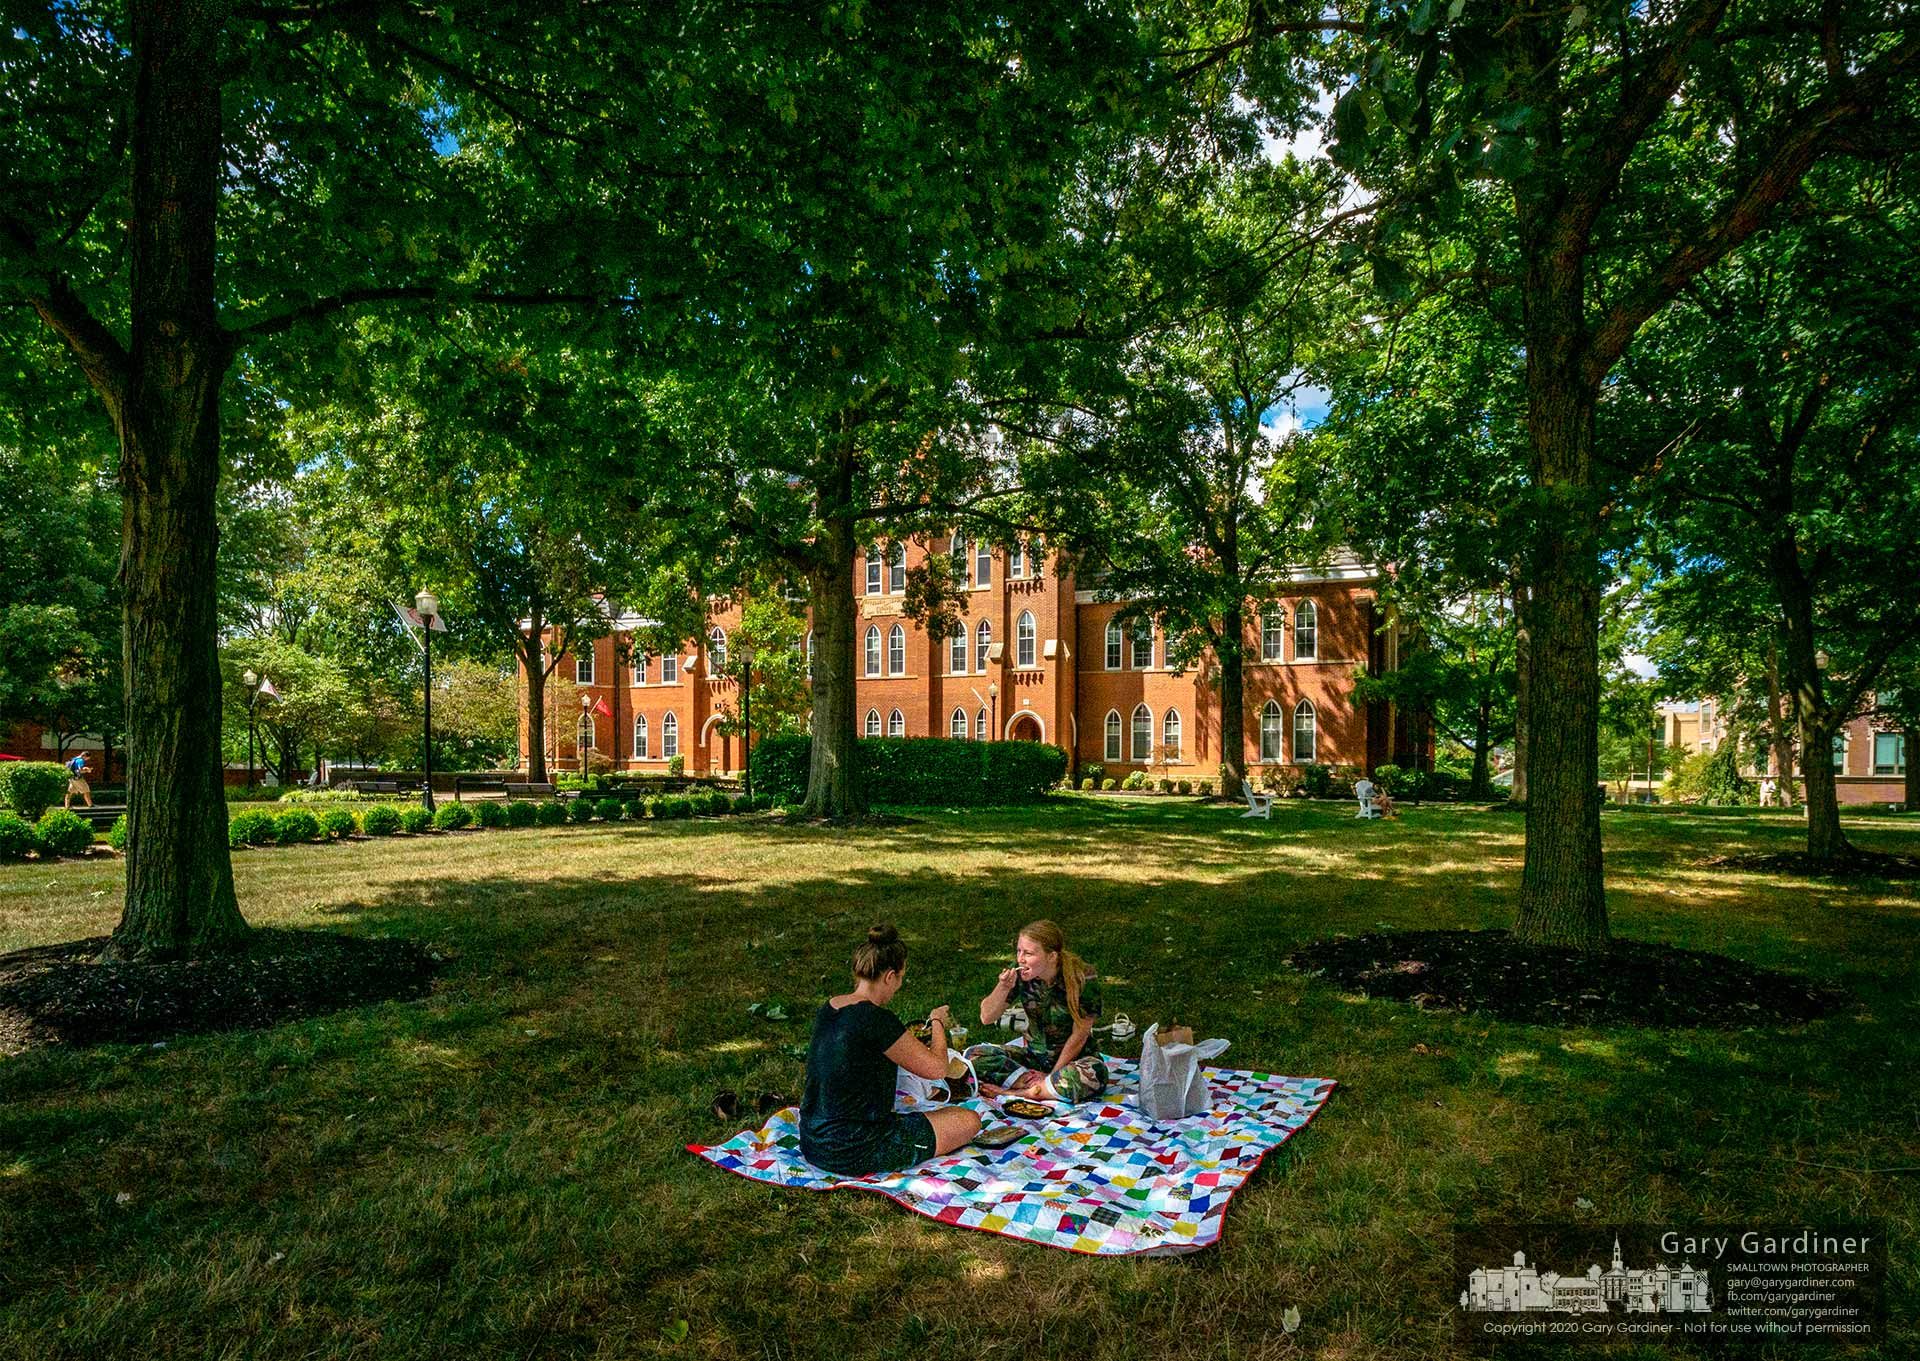 Using a family quilt, two women eat their lunch of the lawn at Towers Hall at Otterbein University. My Final Photo for Aug. 19, 2020.